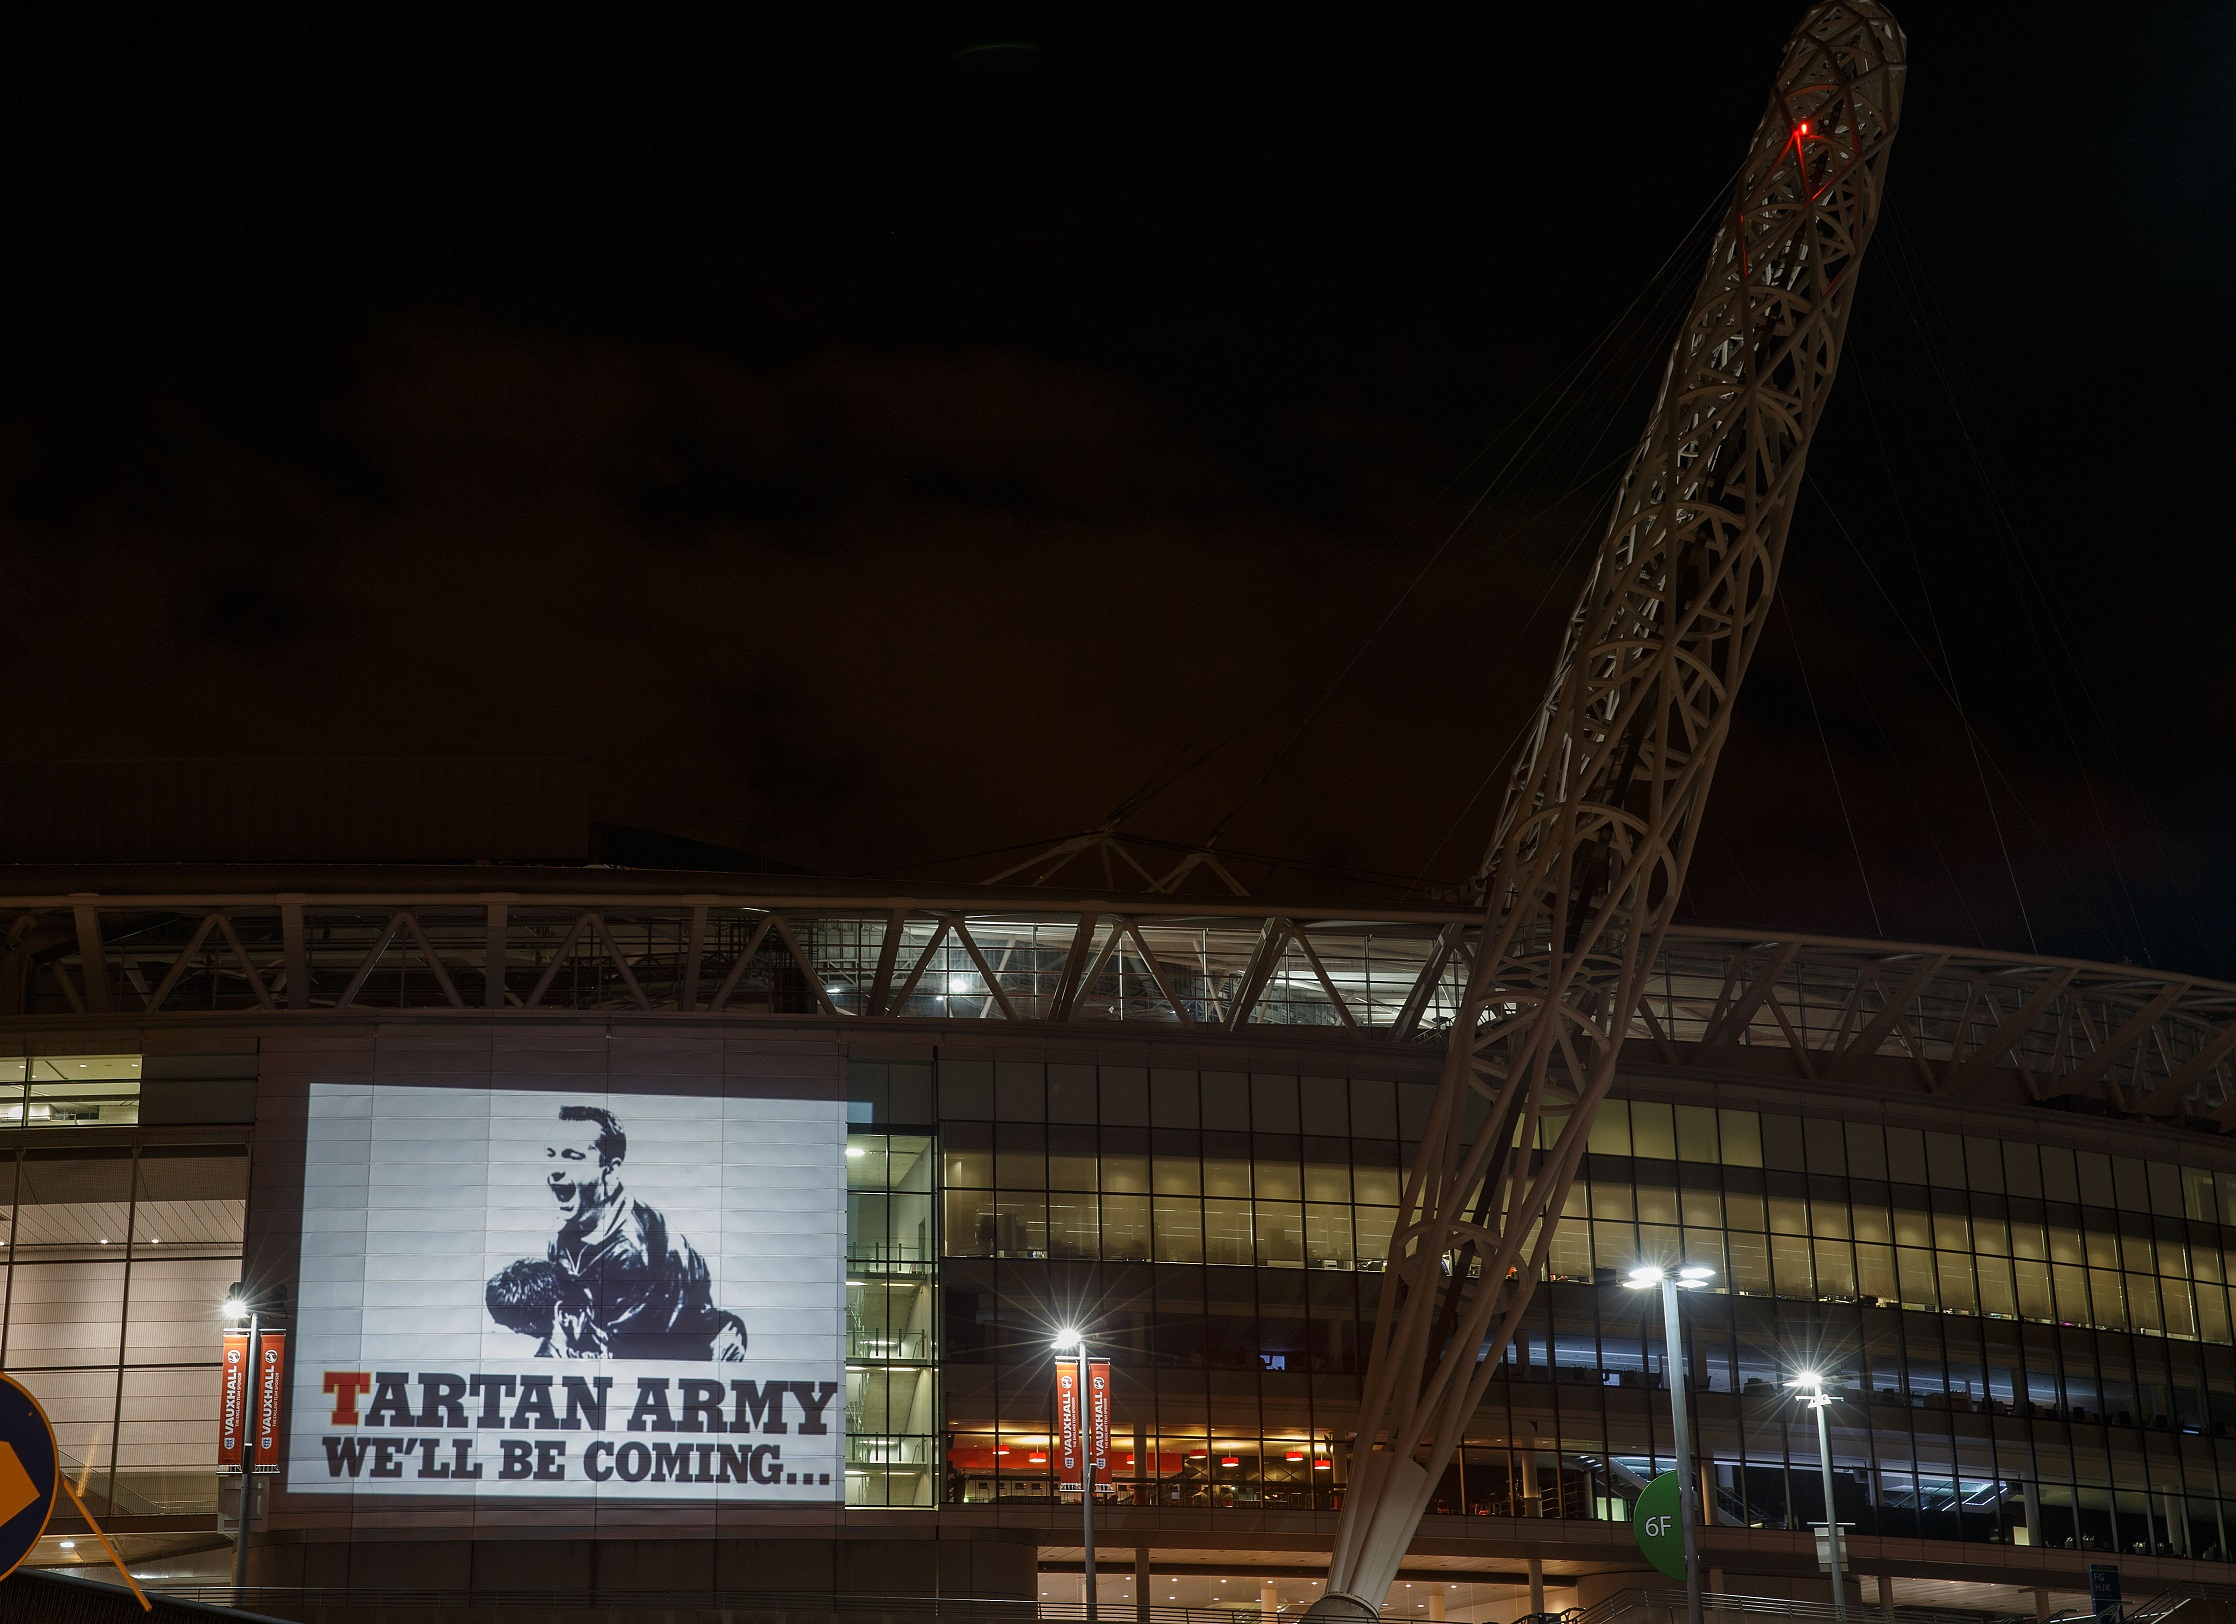 Tartan Army Projection at Wembley Stadium